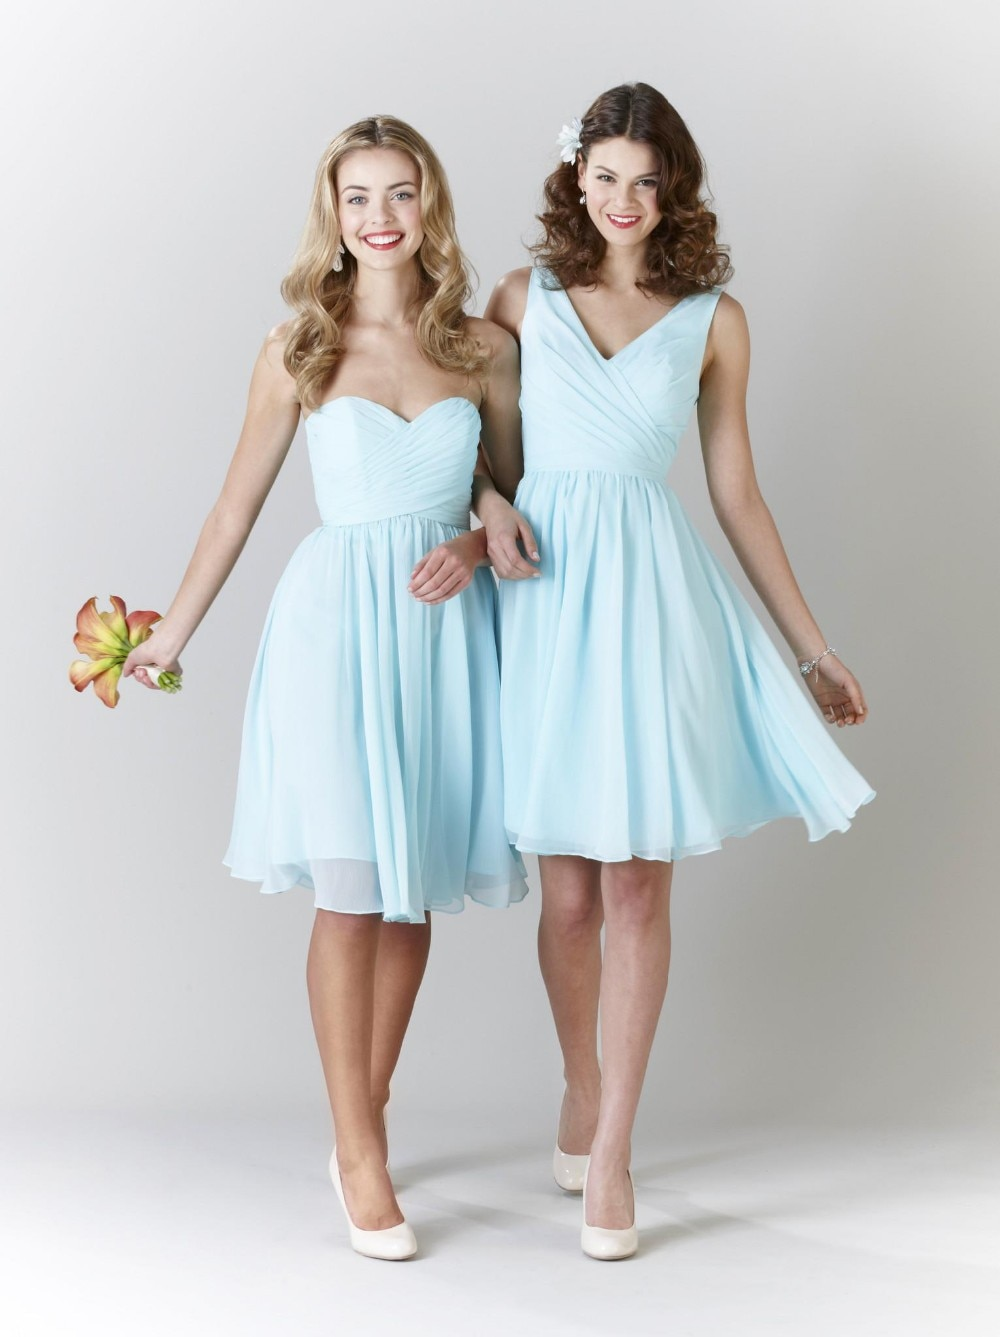 Classical style Mixed Two Style Unique Design Bridesmaid Dresses Chiffon Knee Length Maid Of Honor Dresses Prom Dresses WD31